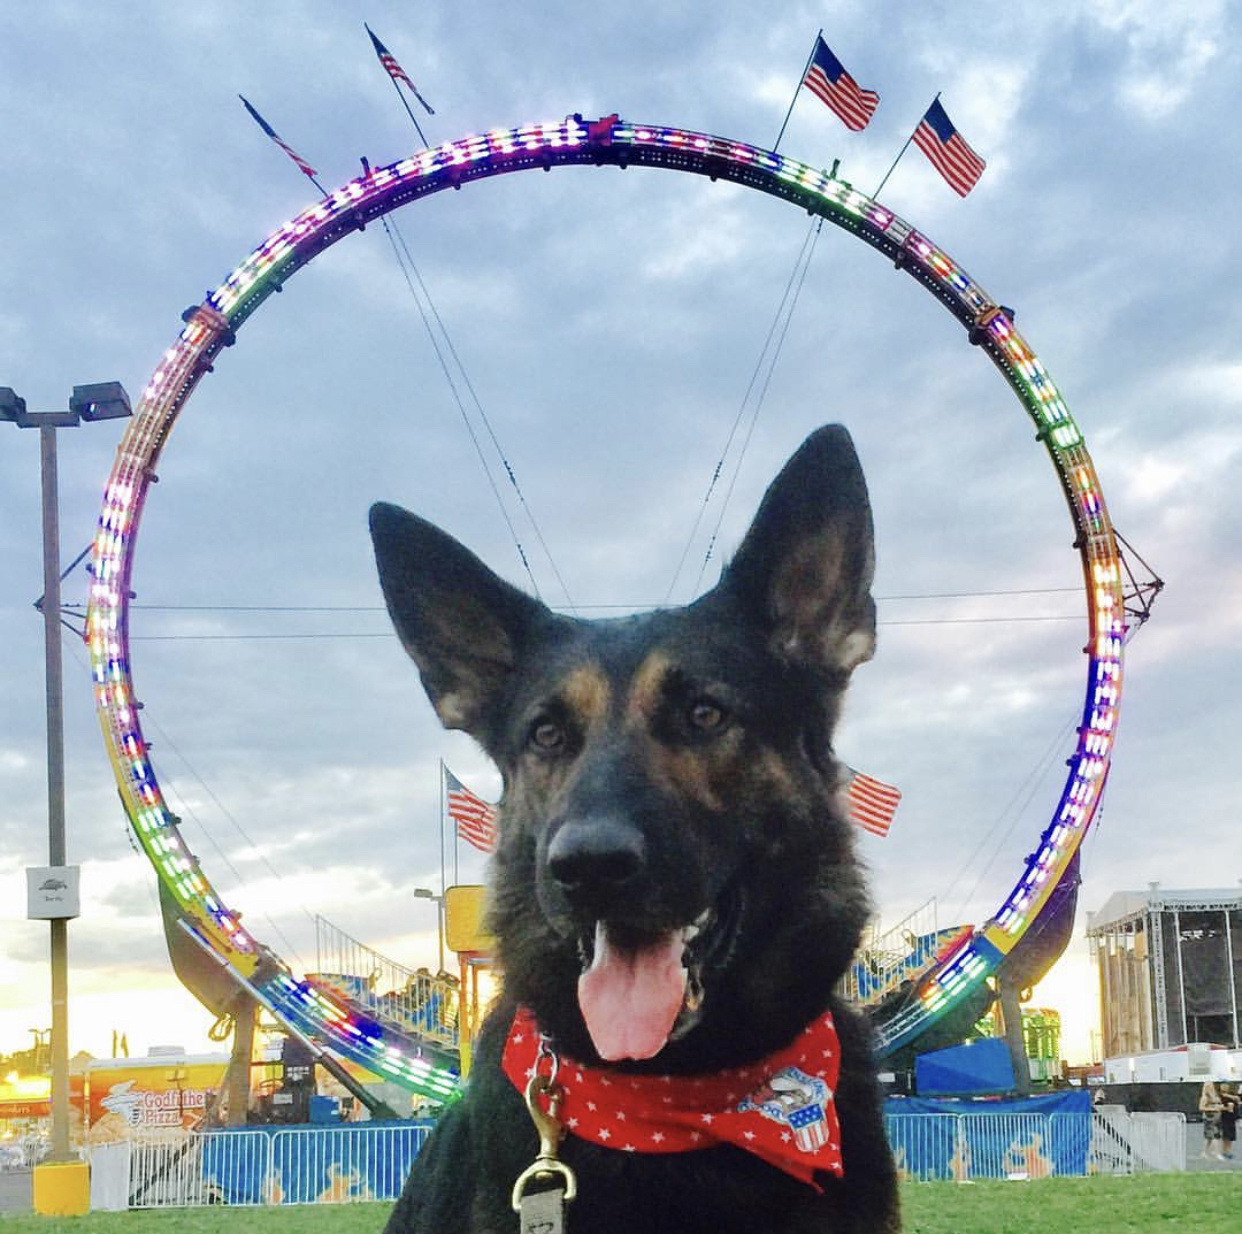 K-9 Bdak - Specialty: Explosives & Firearm DetectionBreed: German Shepherd DogBirthdate: April 29, 2014Birthplace: Foley, MinnesotaColor: Black and TanWeight: 77 PoundsCertification: United States Army &National Police Canine AssociationFood: NutriSource PerformanceHometown: Saint Cloud, Minnesota